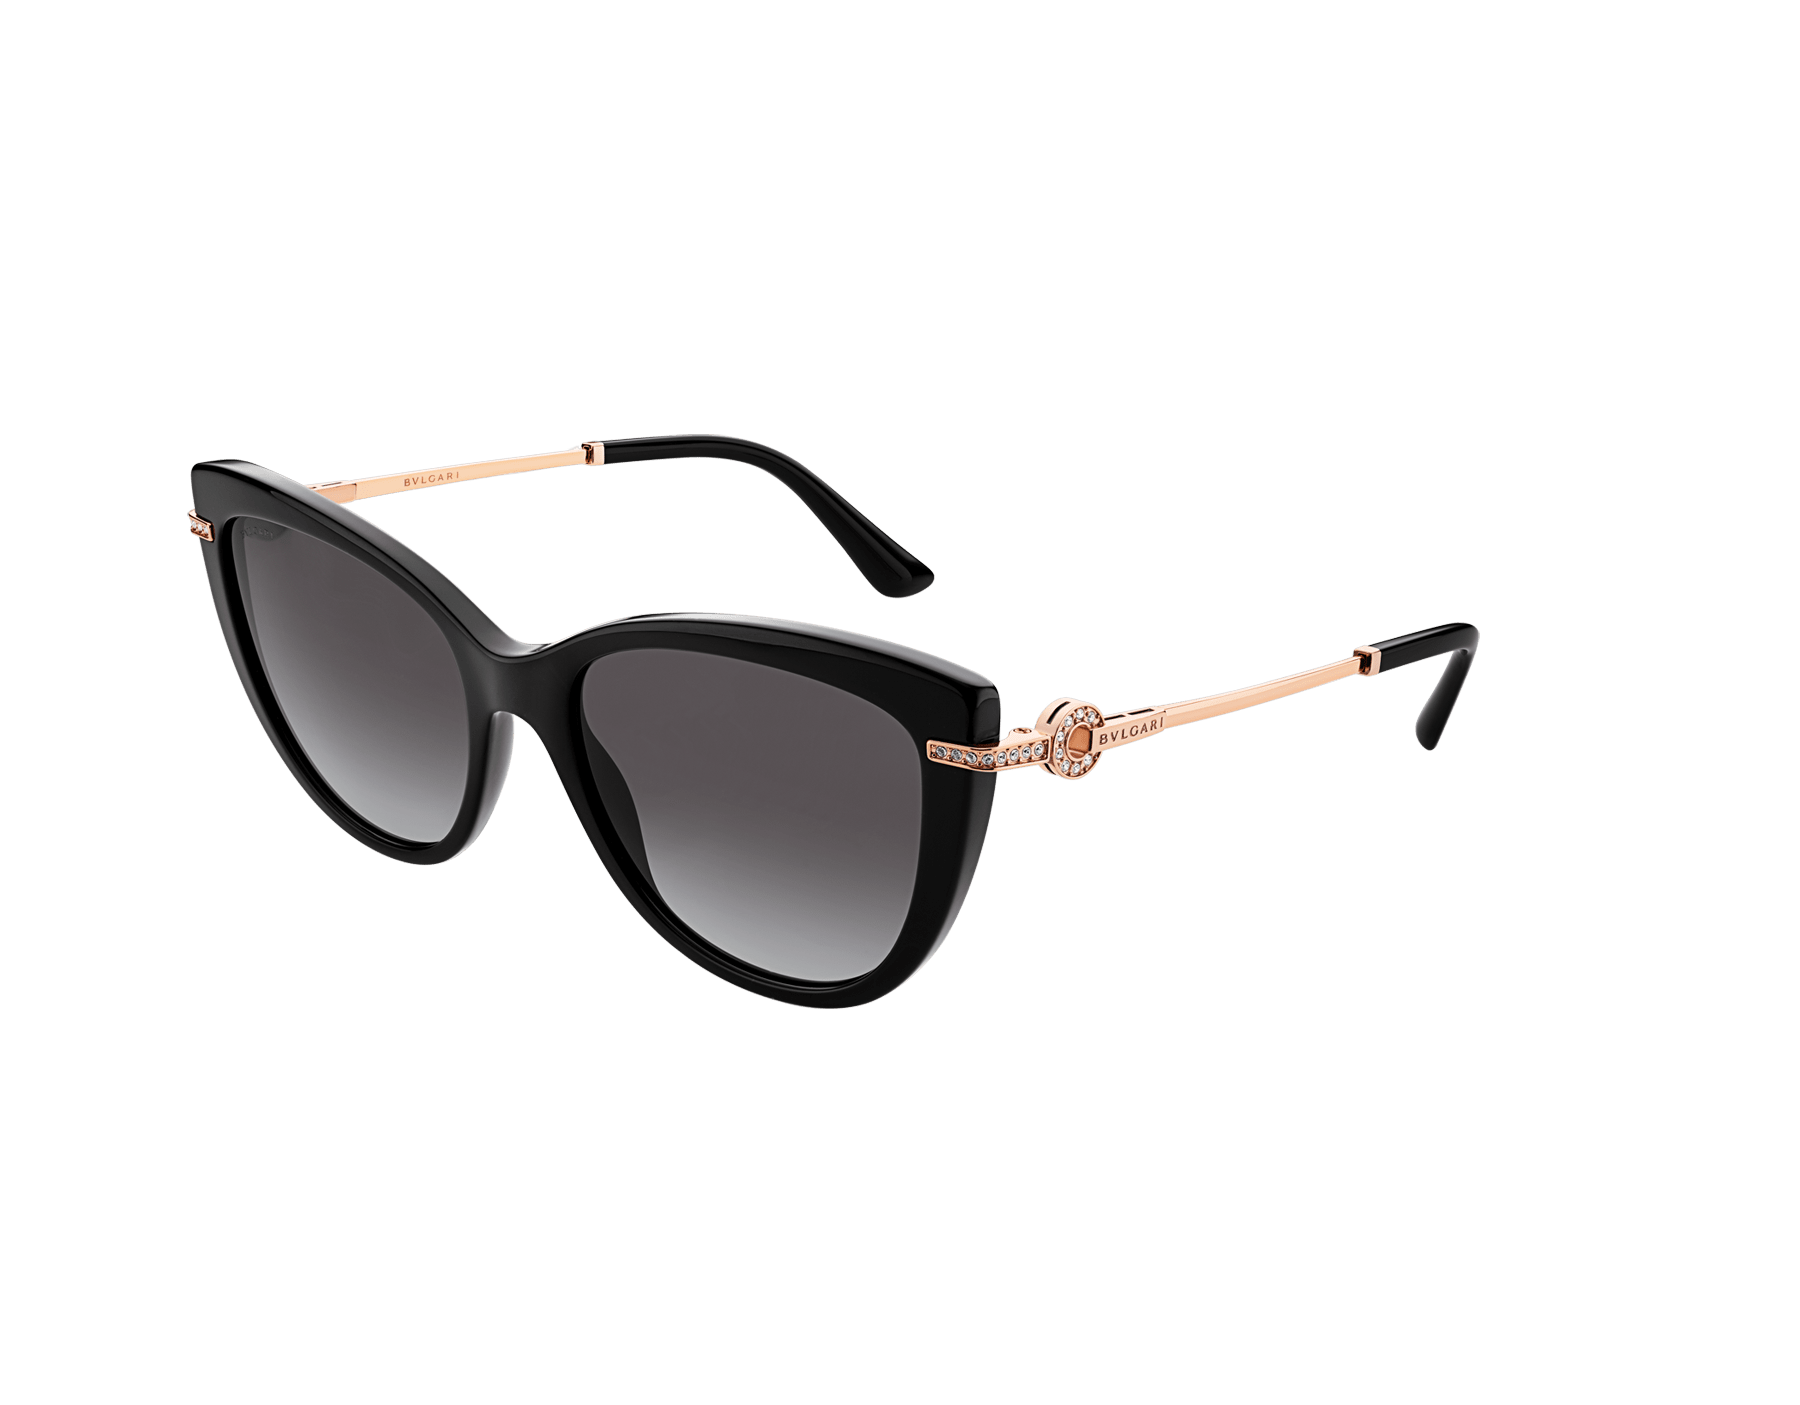 BVLGARI BVLGARI cat-eye acetate sunglasses with metal décor and crystals. 903800 image 1